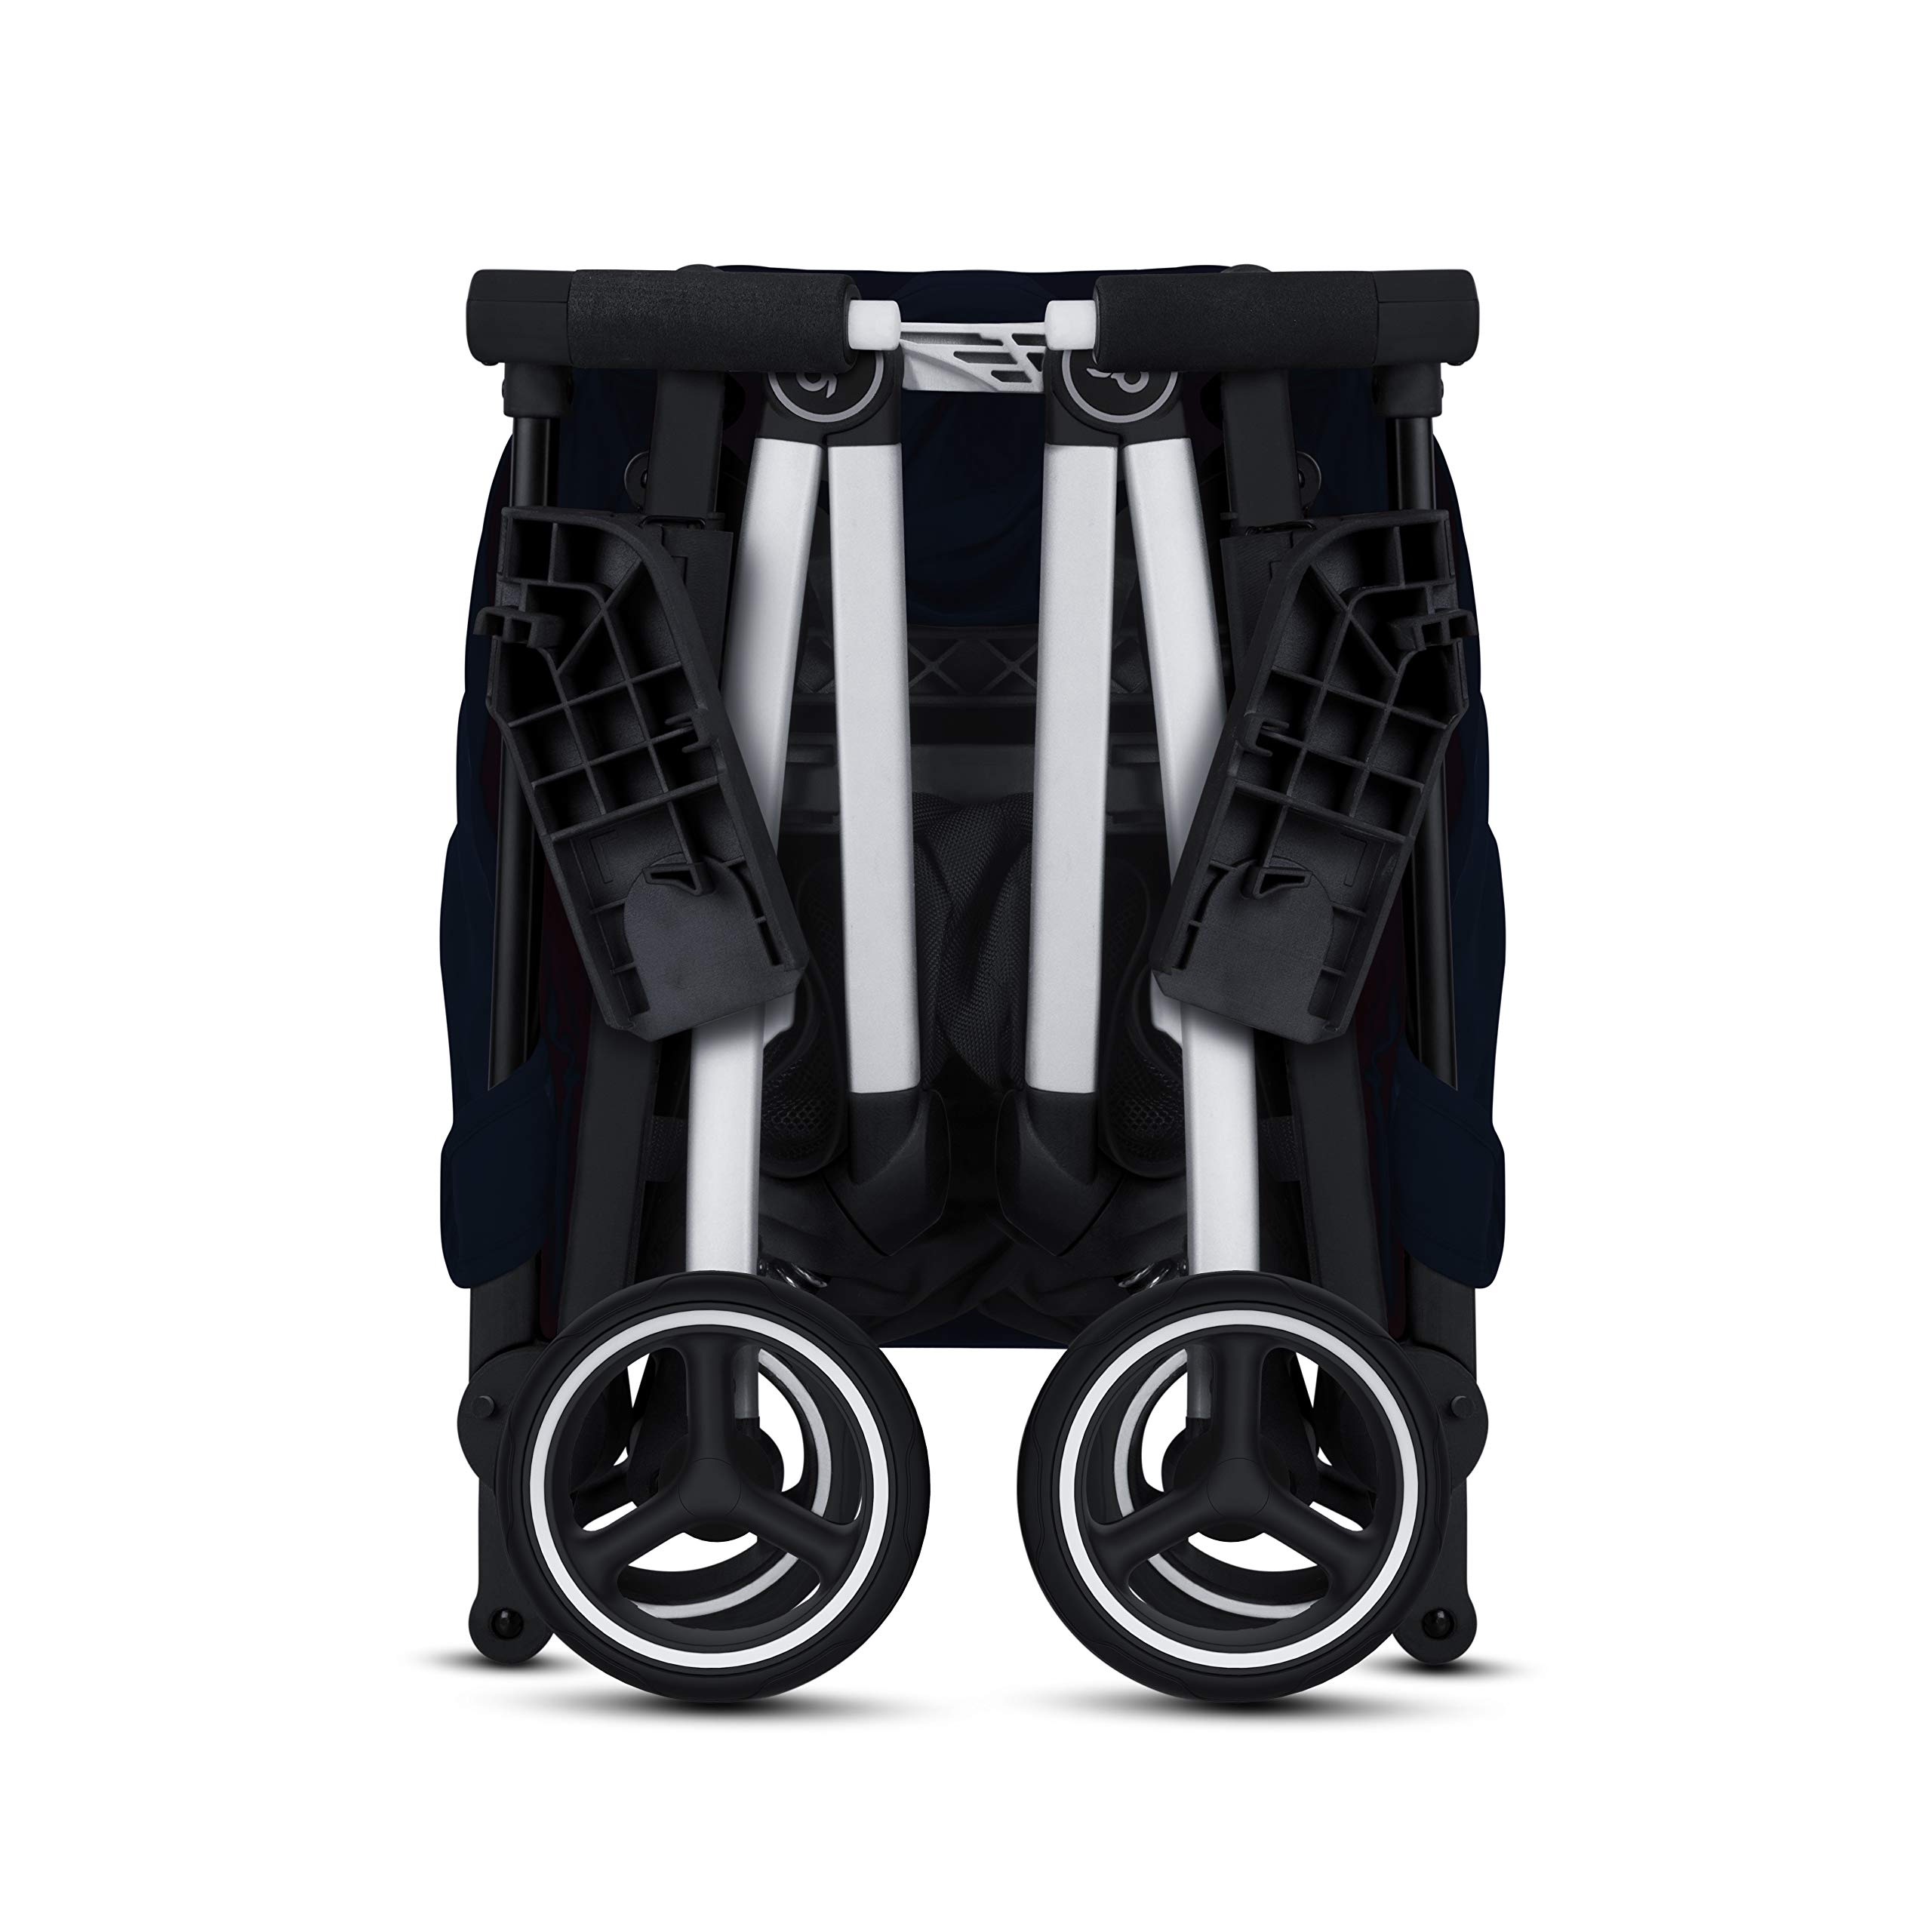 GB Pockit+ All-City Stroller - Night Blue by gb (Image #1)